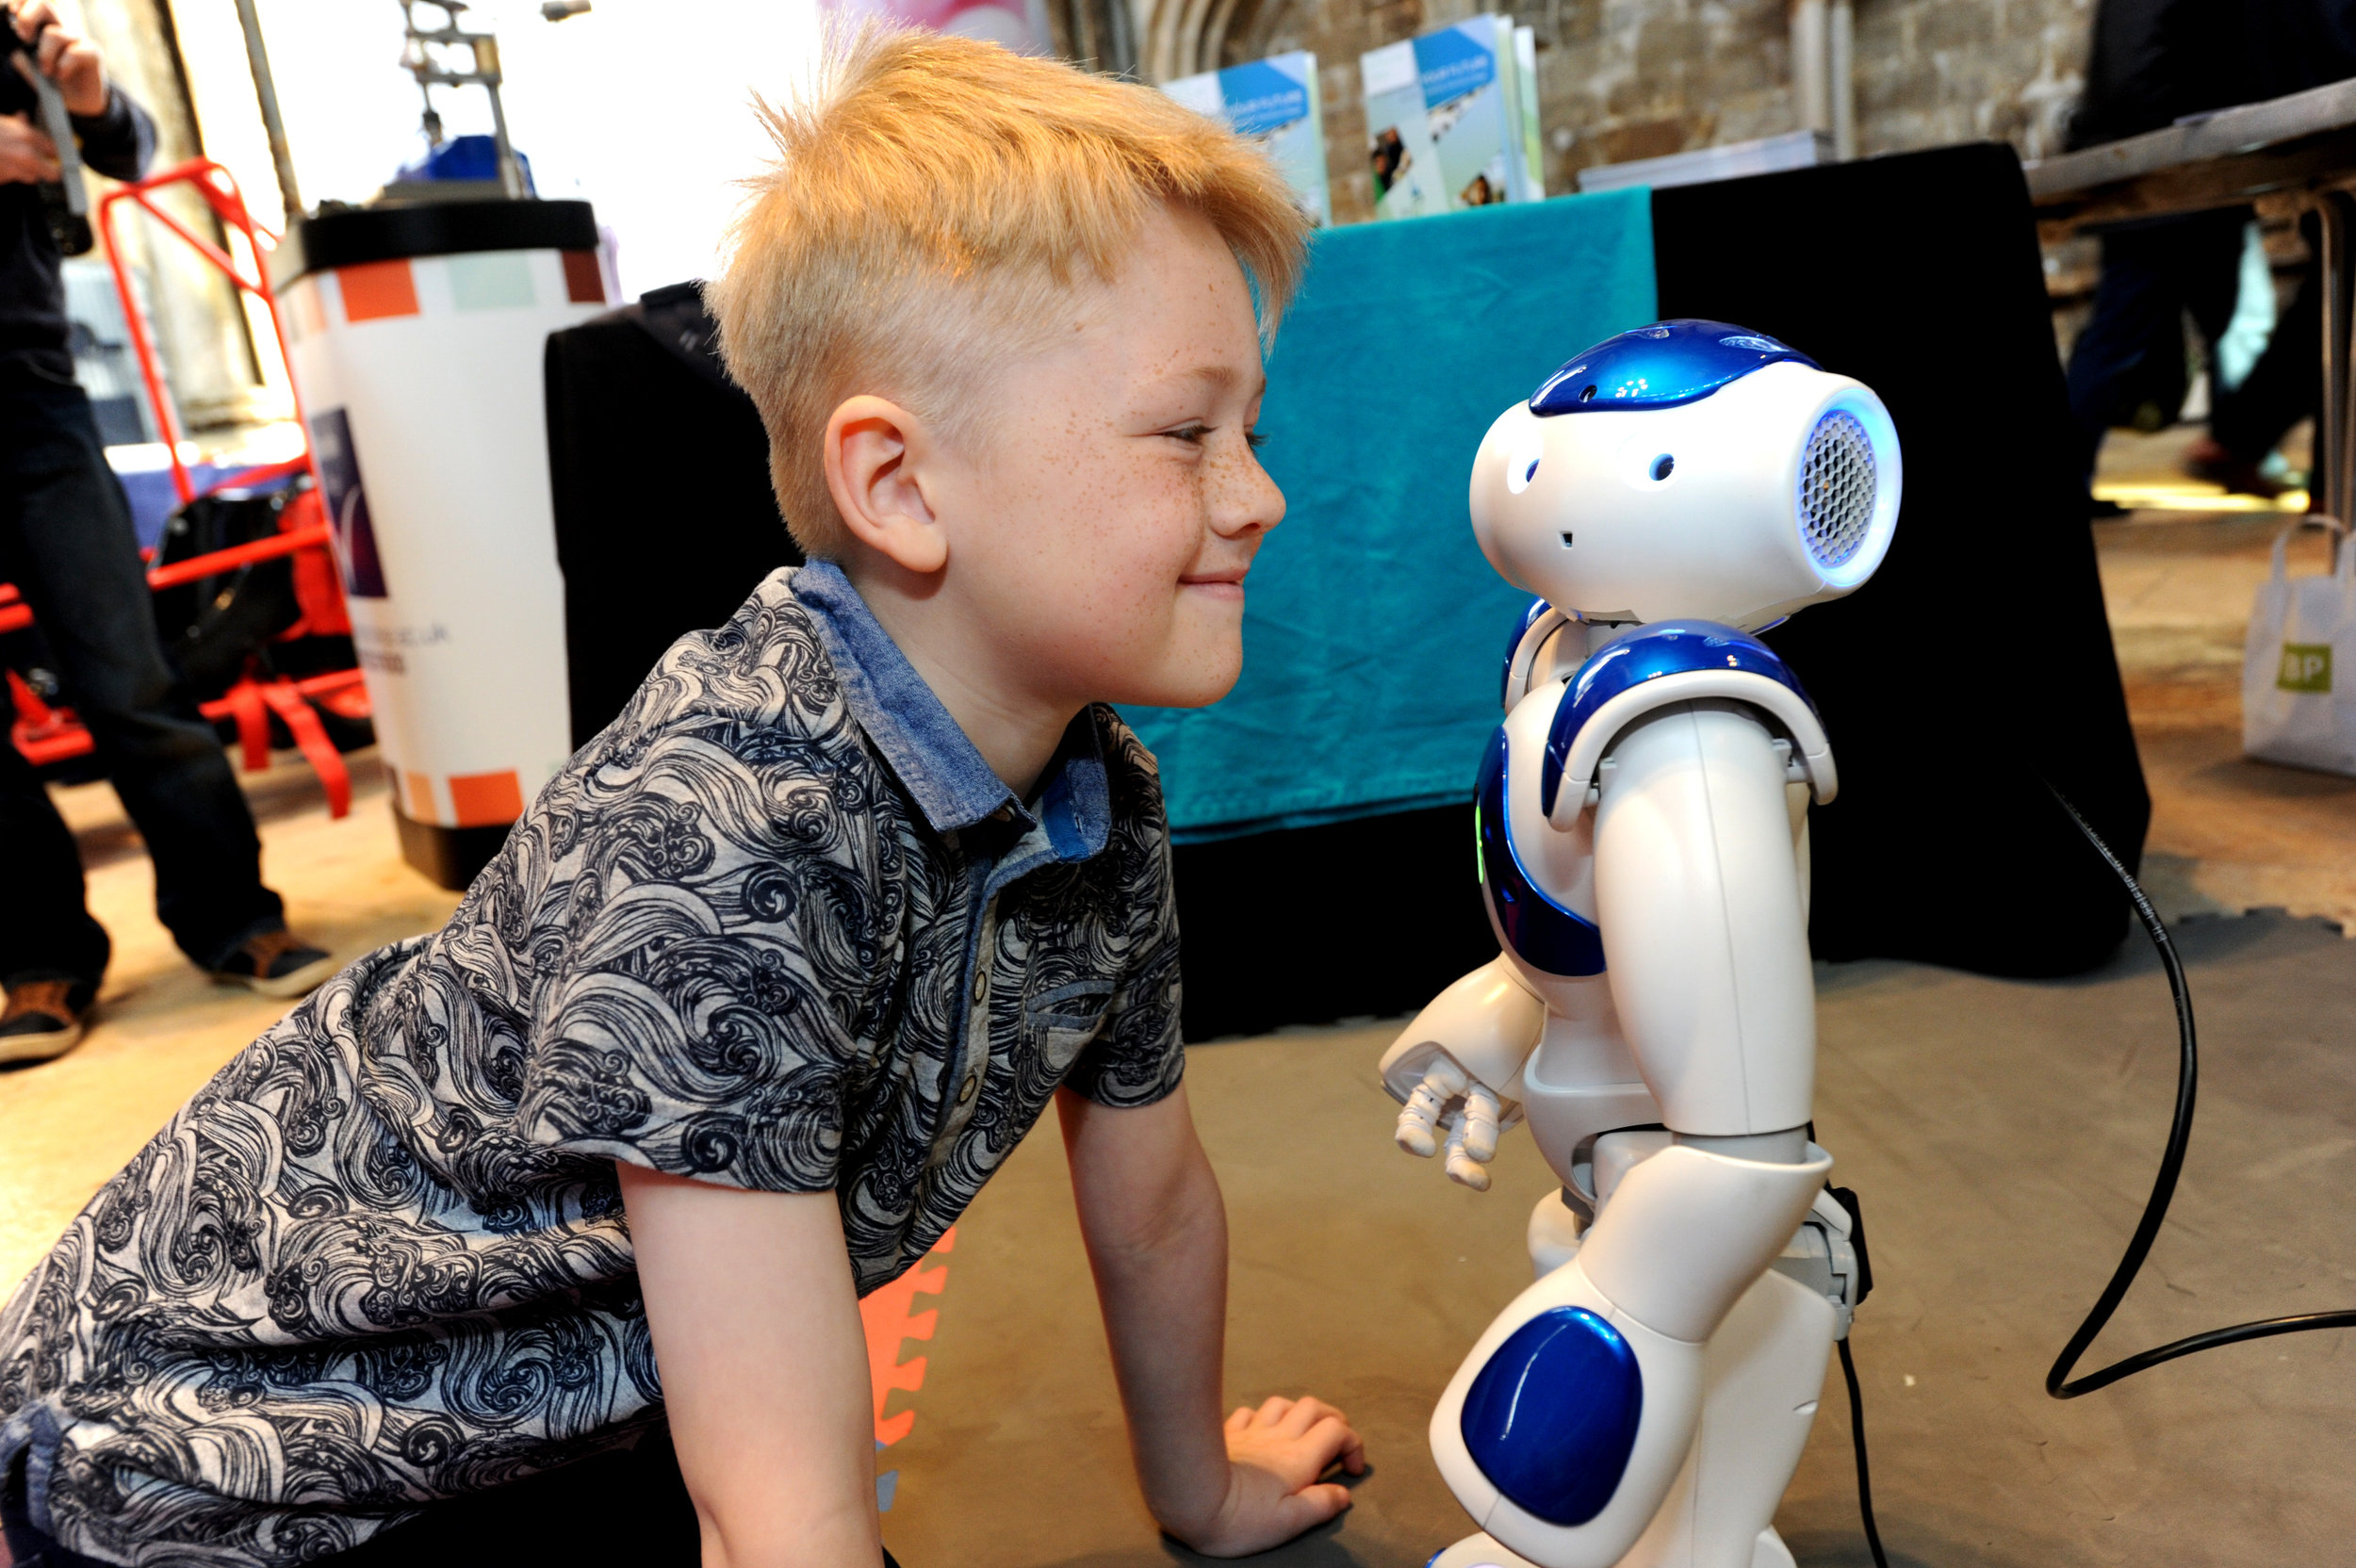 Interacting with Mr Nao the robot